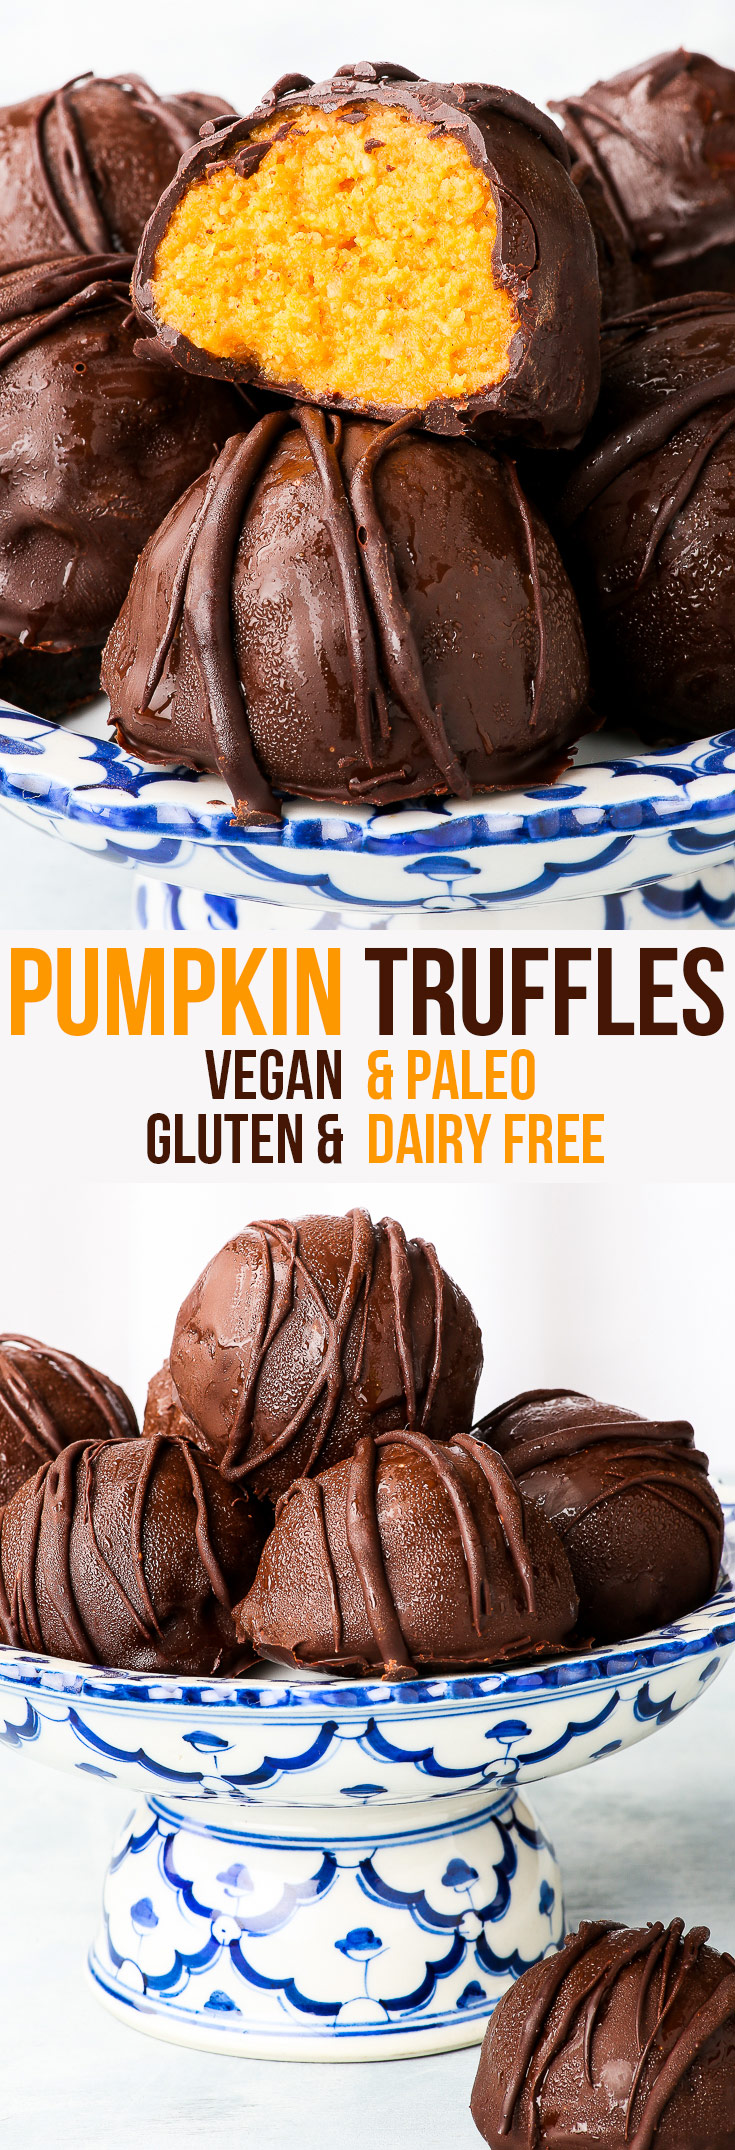 Vegan & Paleo No-Bake Pumpkin Truffles {gluten, dairy, egg, peanut, soy & refined sugar free, vegan, paleo} - A simple and healthy recipe for no-bake pumpkin truffles, which couldn't be more scrumptious if they tried. Vegan and paleo pumpkin filling in the centre with a coating of dark chocolate. The perfect healthy fall dessert.